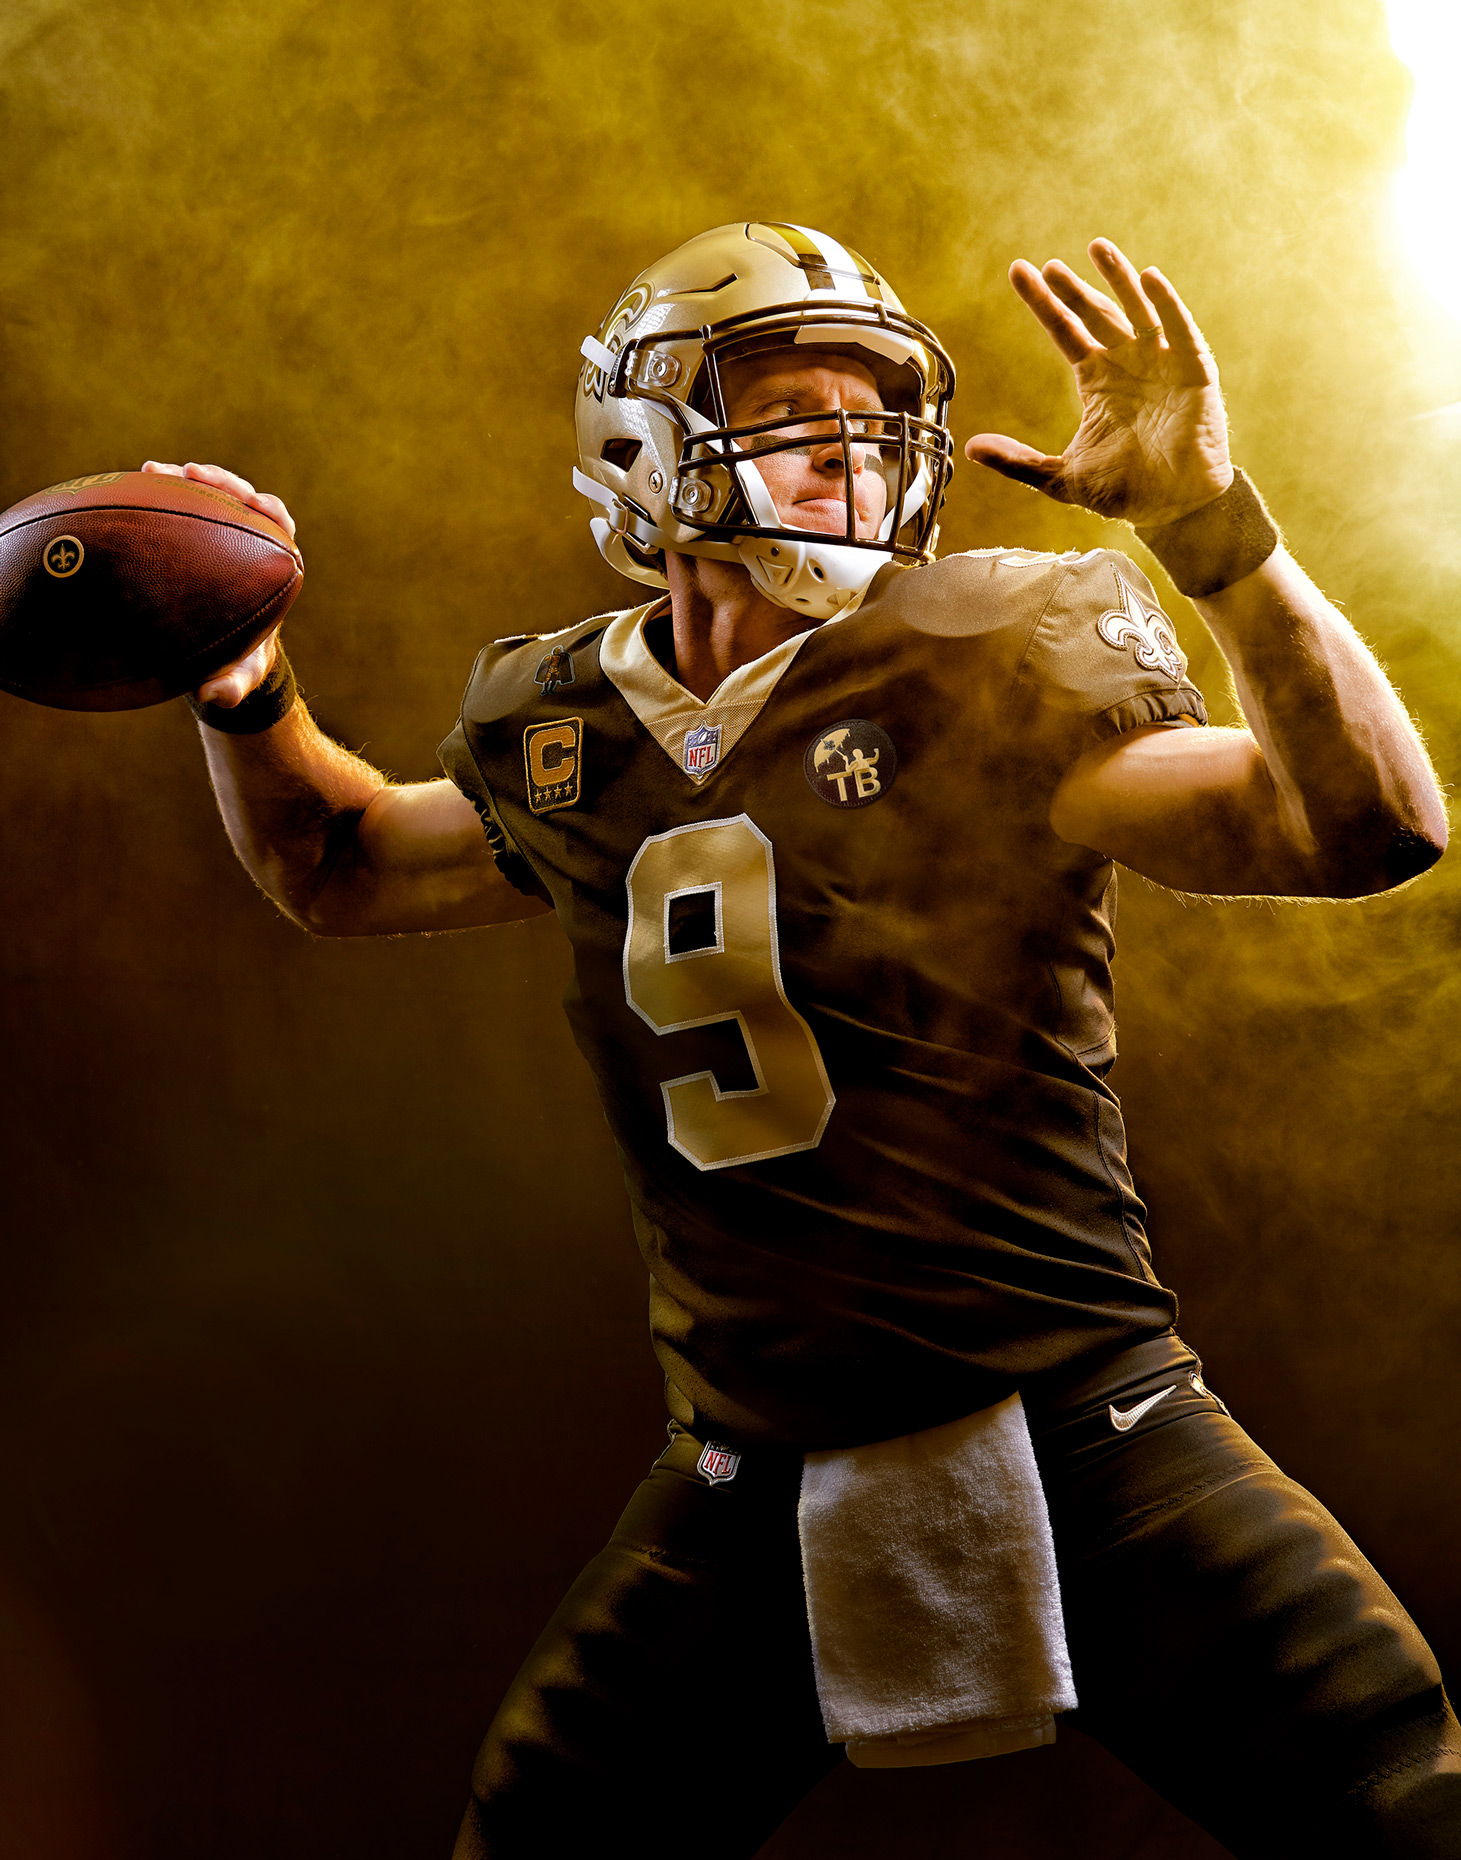 Drew Brees NFL Portrait